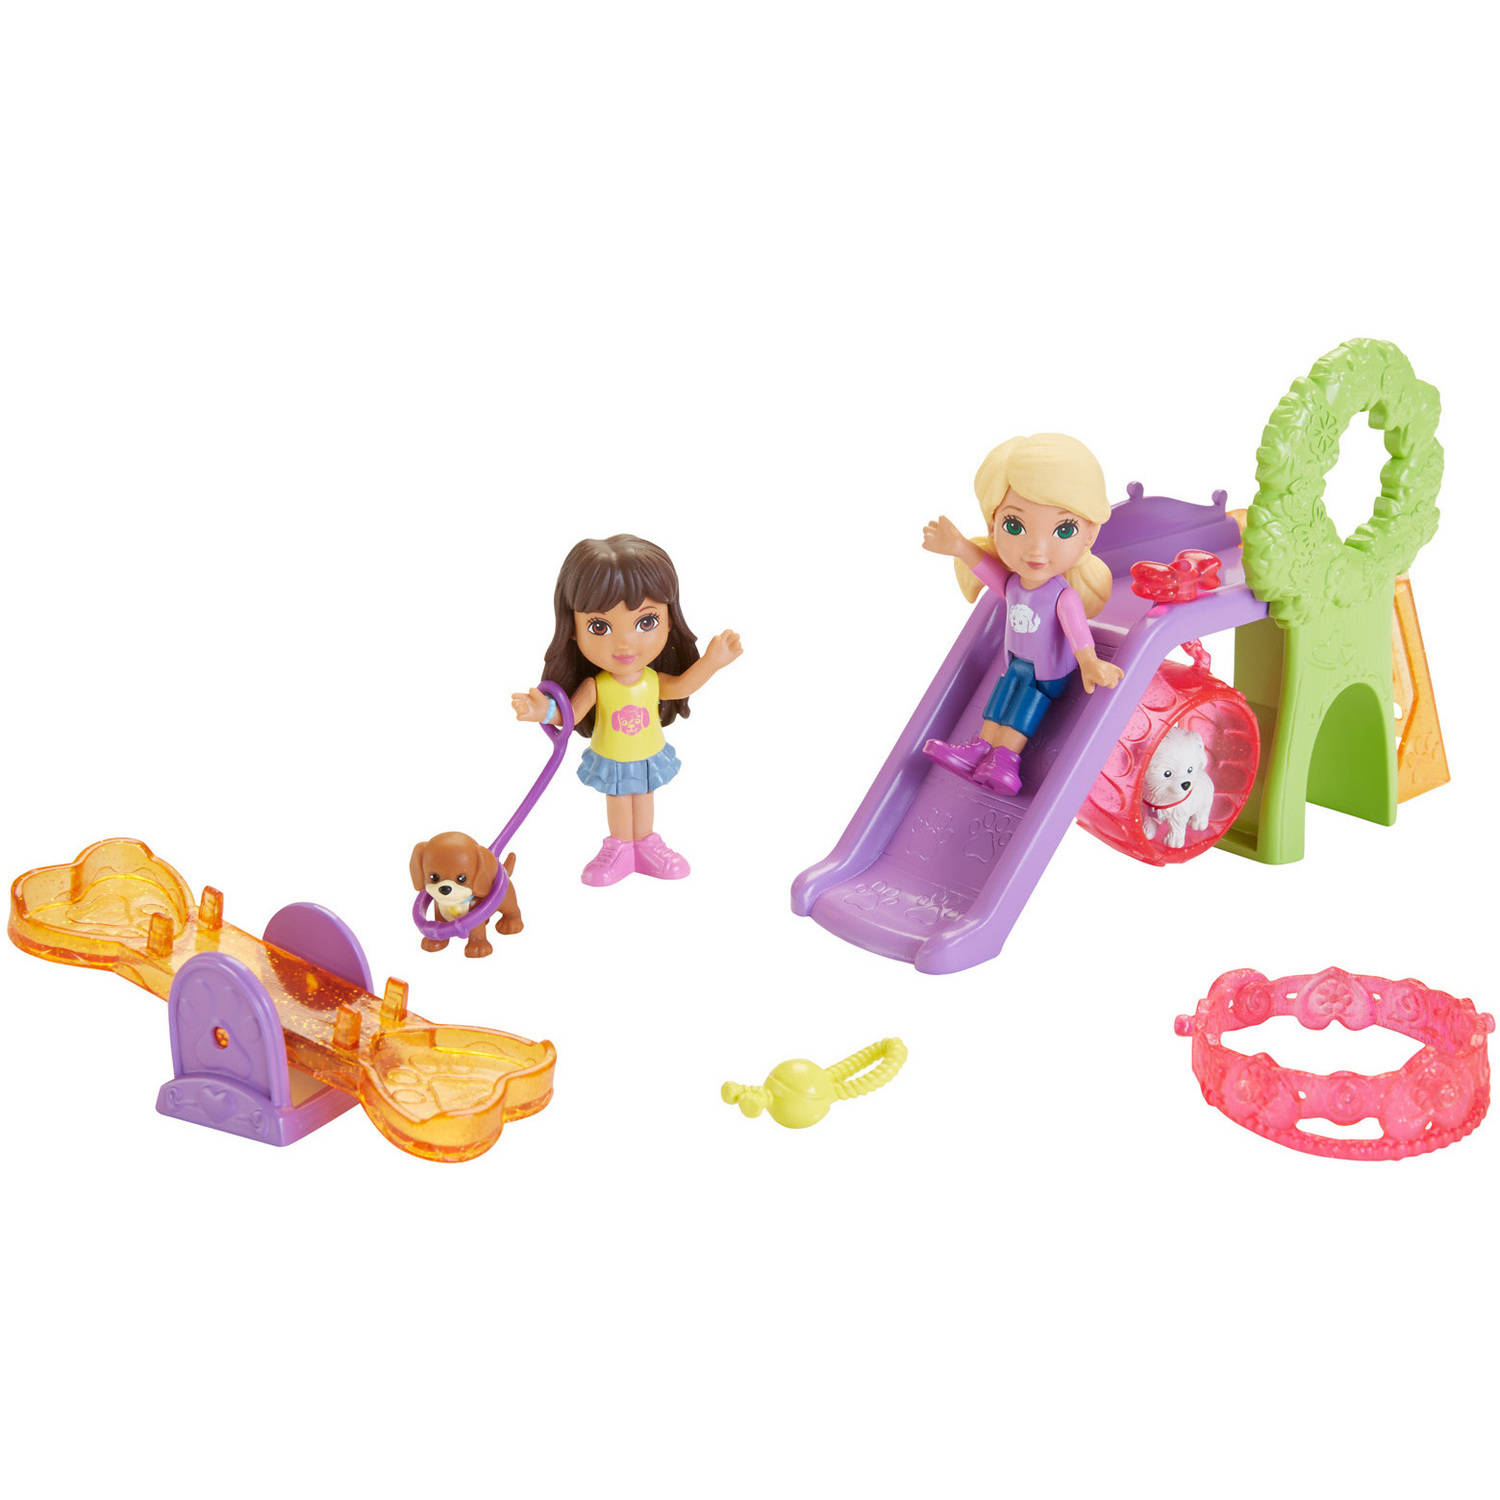 Nickelodeon Dora and Friends Doggie Park Friends Dora and Alana by Mattel, Inc.